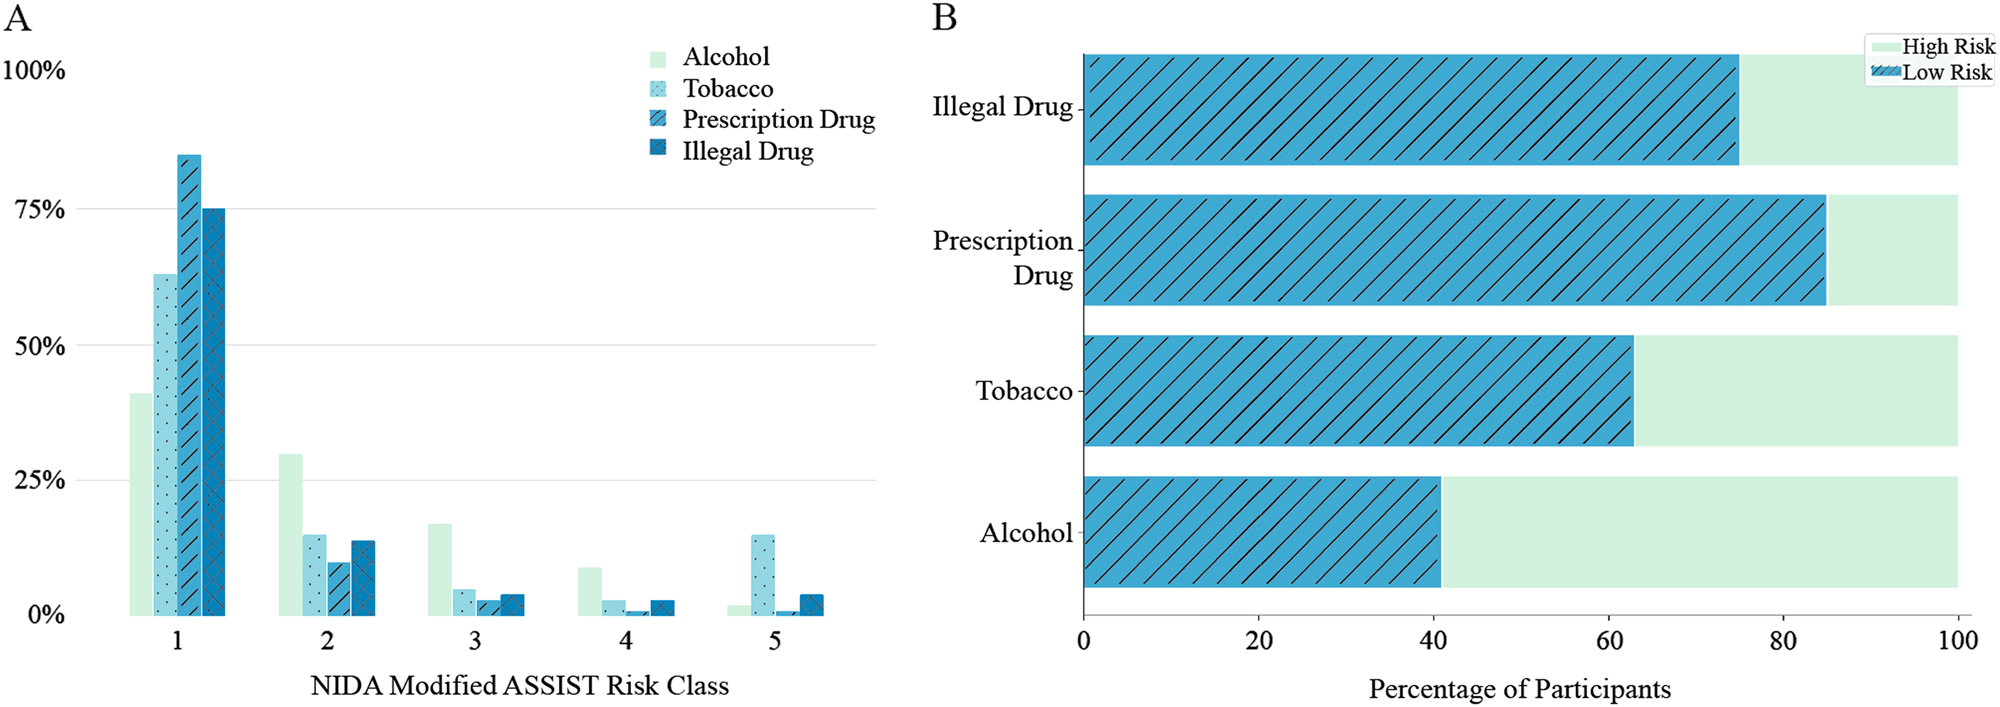 Identifying substance use risk based on deep neural networks and